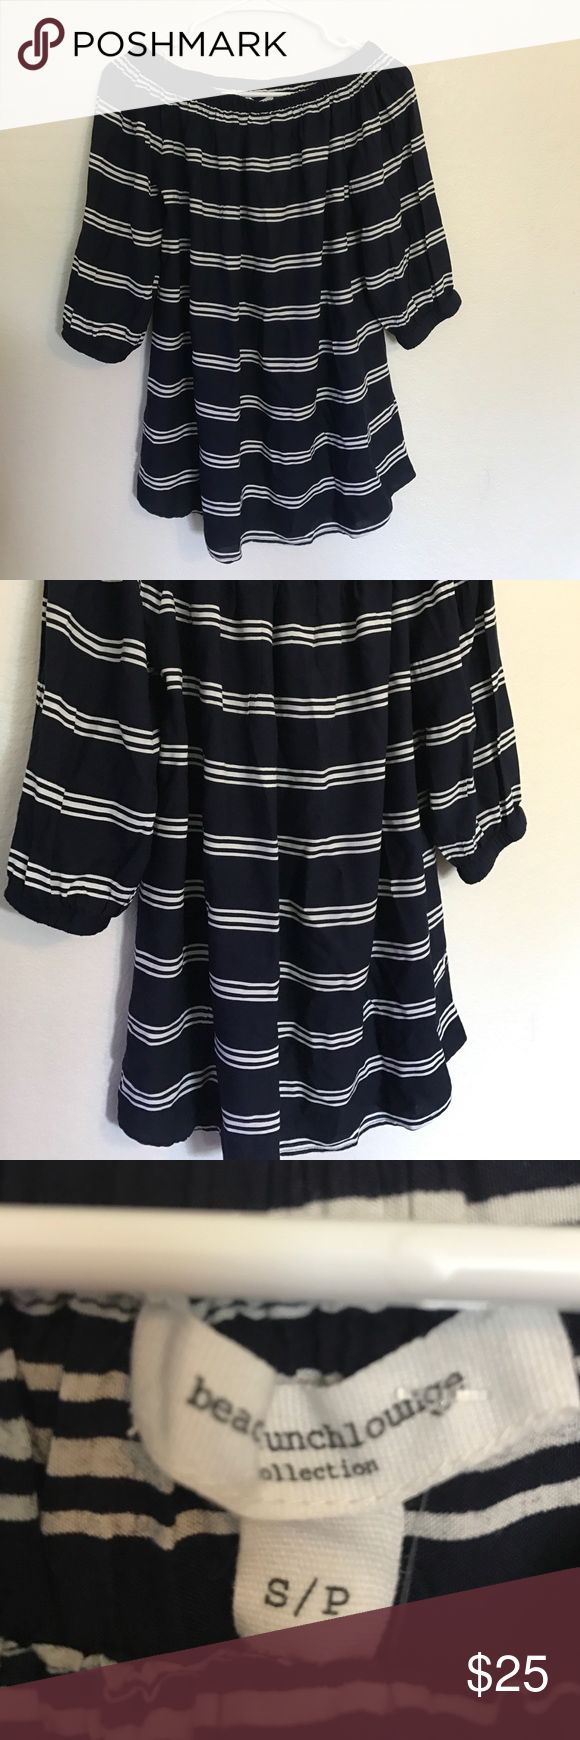 Blue and White Striped Blouse Blue and White Blouse - flowy/loose fit with a half sleeve. NWT - size small.  All orders are typically shipped same day if placed before 4 PM PST or following day if after.  Open to reasonable offers. Bundle for a discount!  💋 Tops Blouses